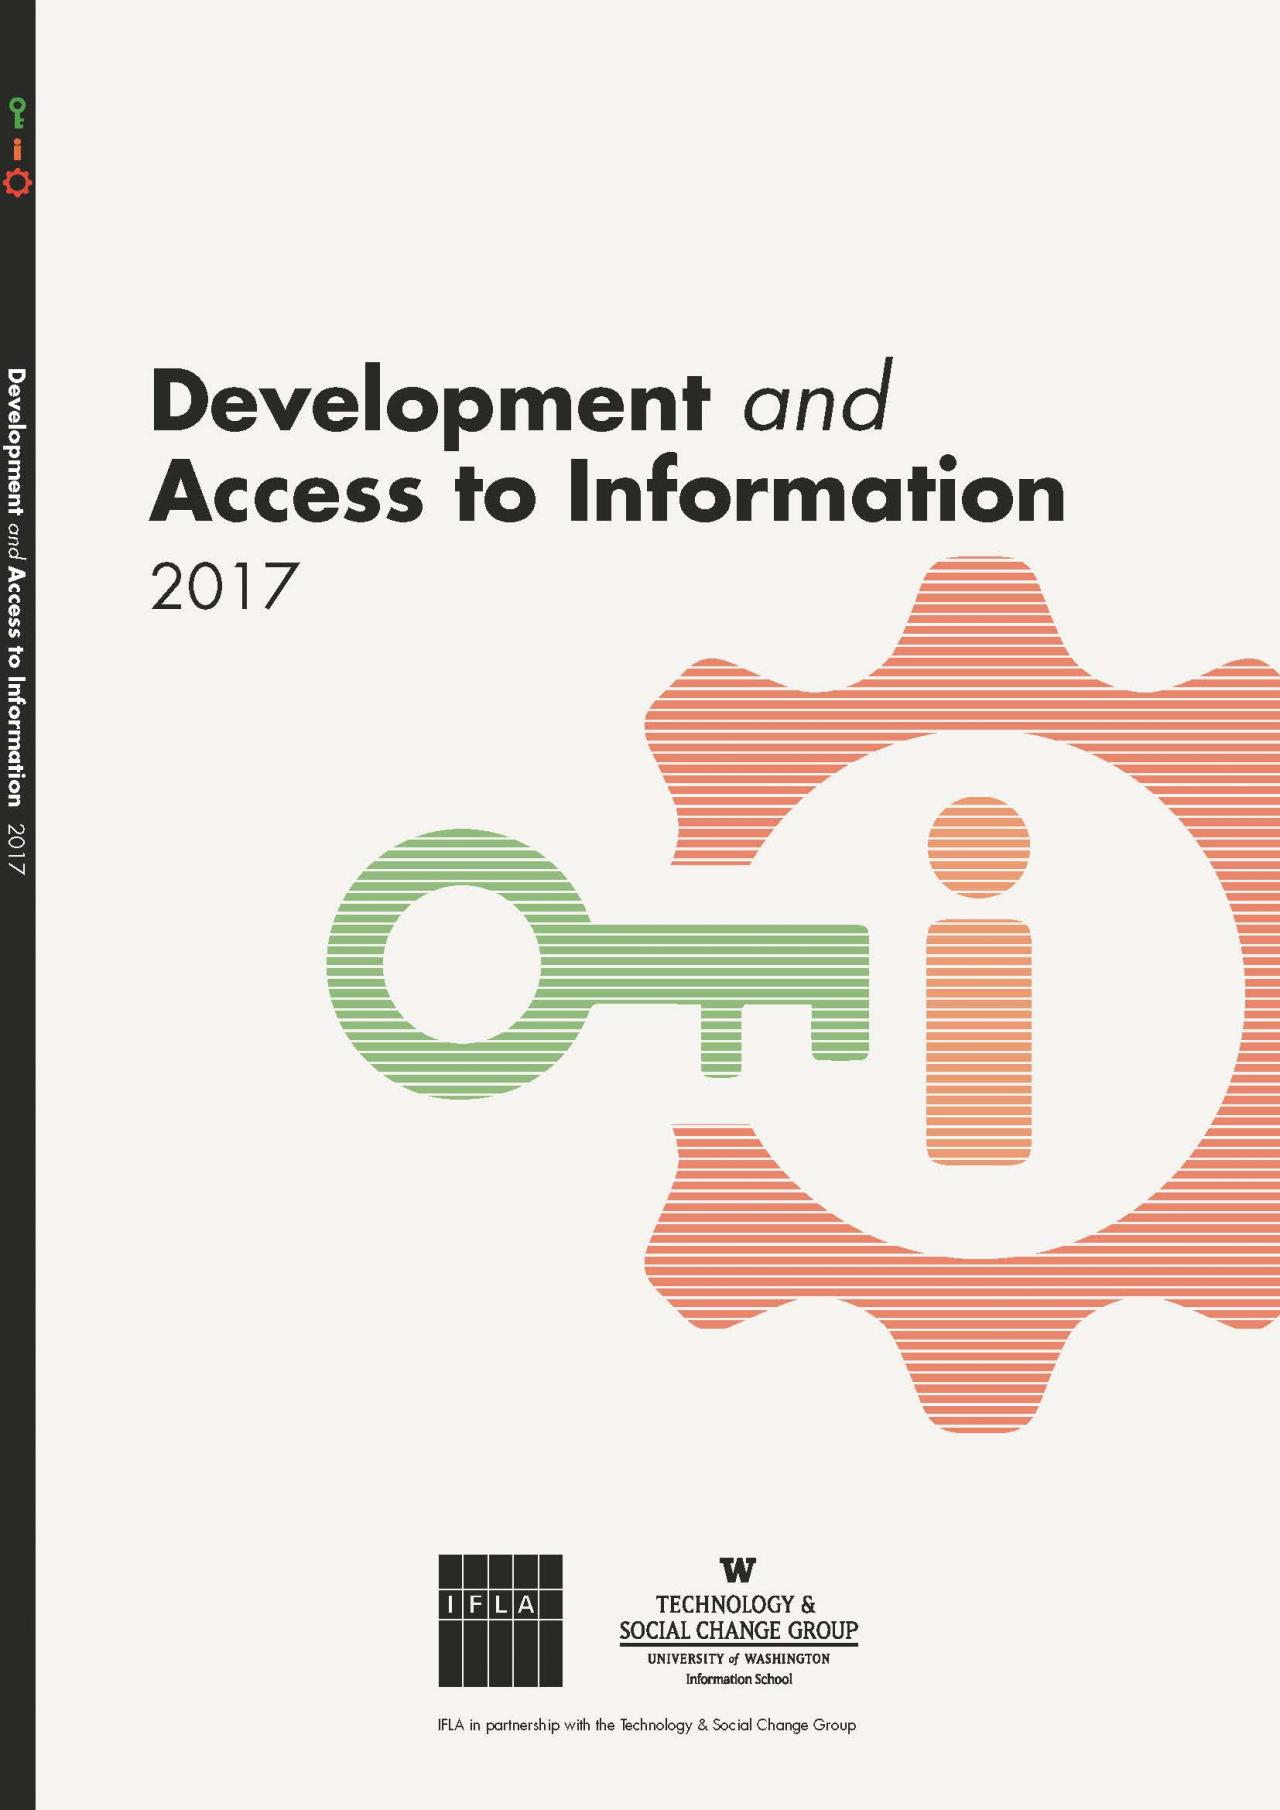 Development and Access to Information (DA2I) Report